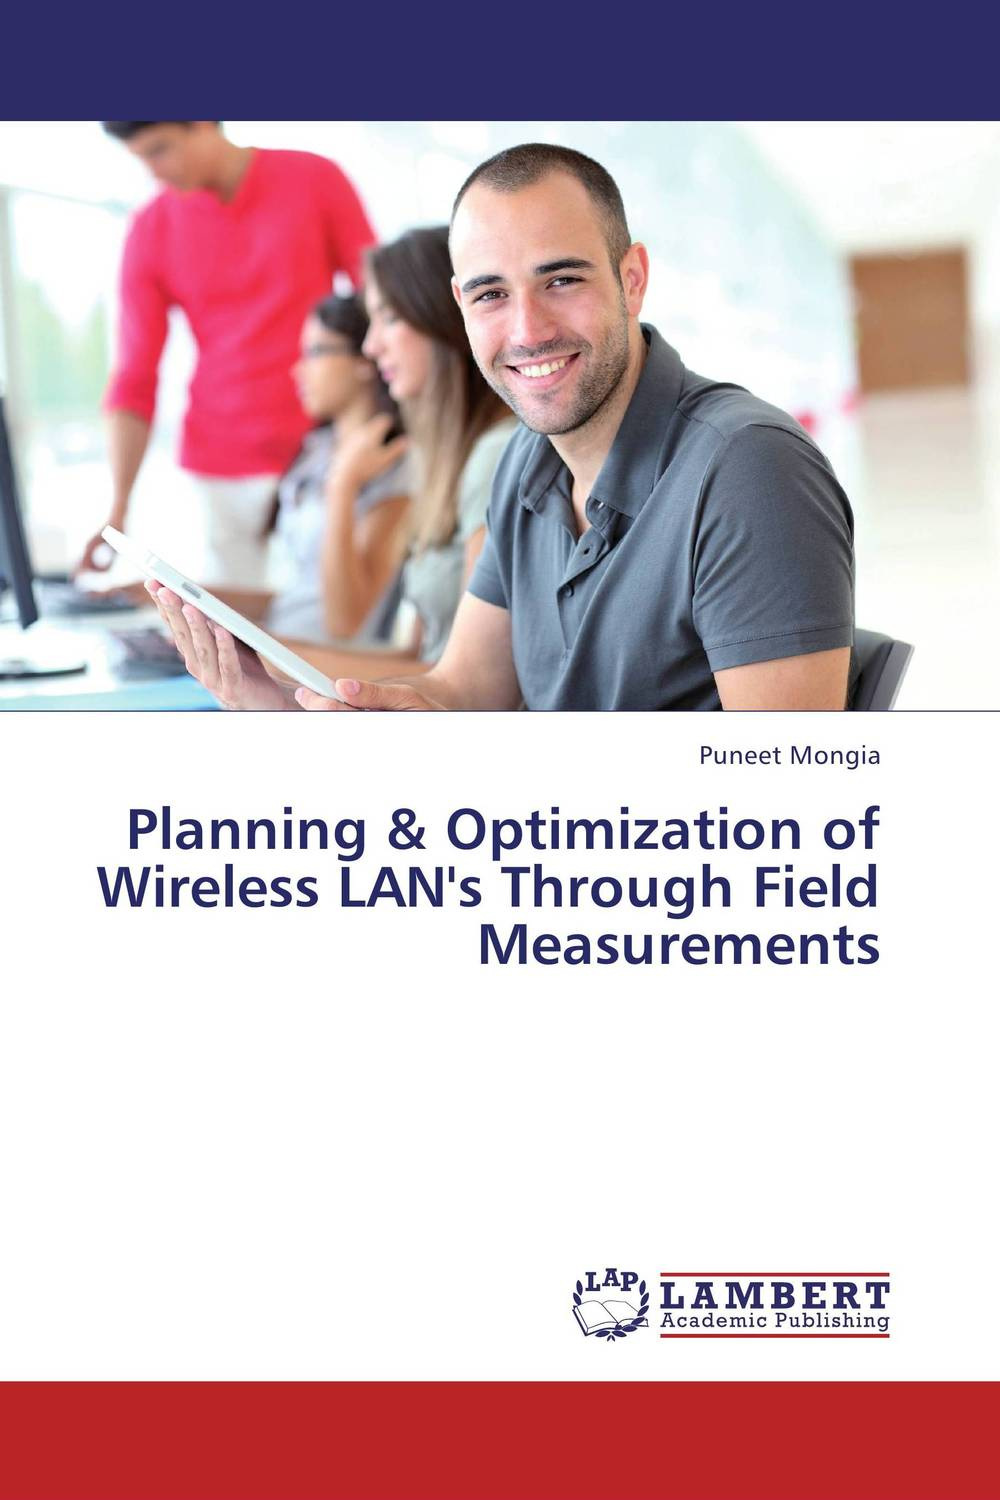 Planning & Optimization of Wireless LAN's Through Field Measurements walking through the path of faith